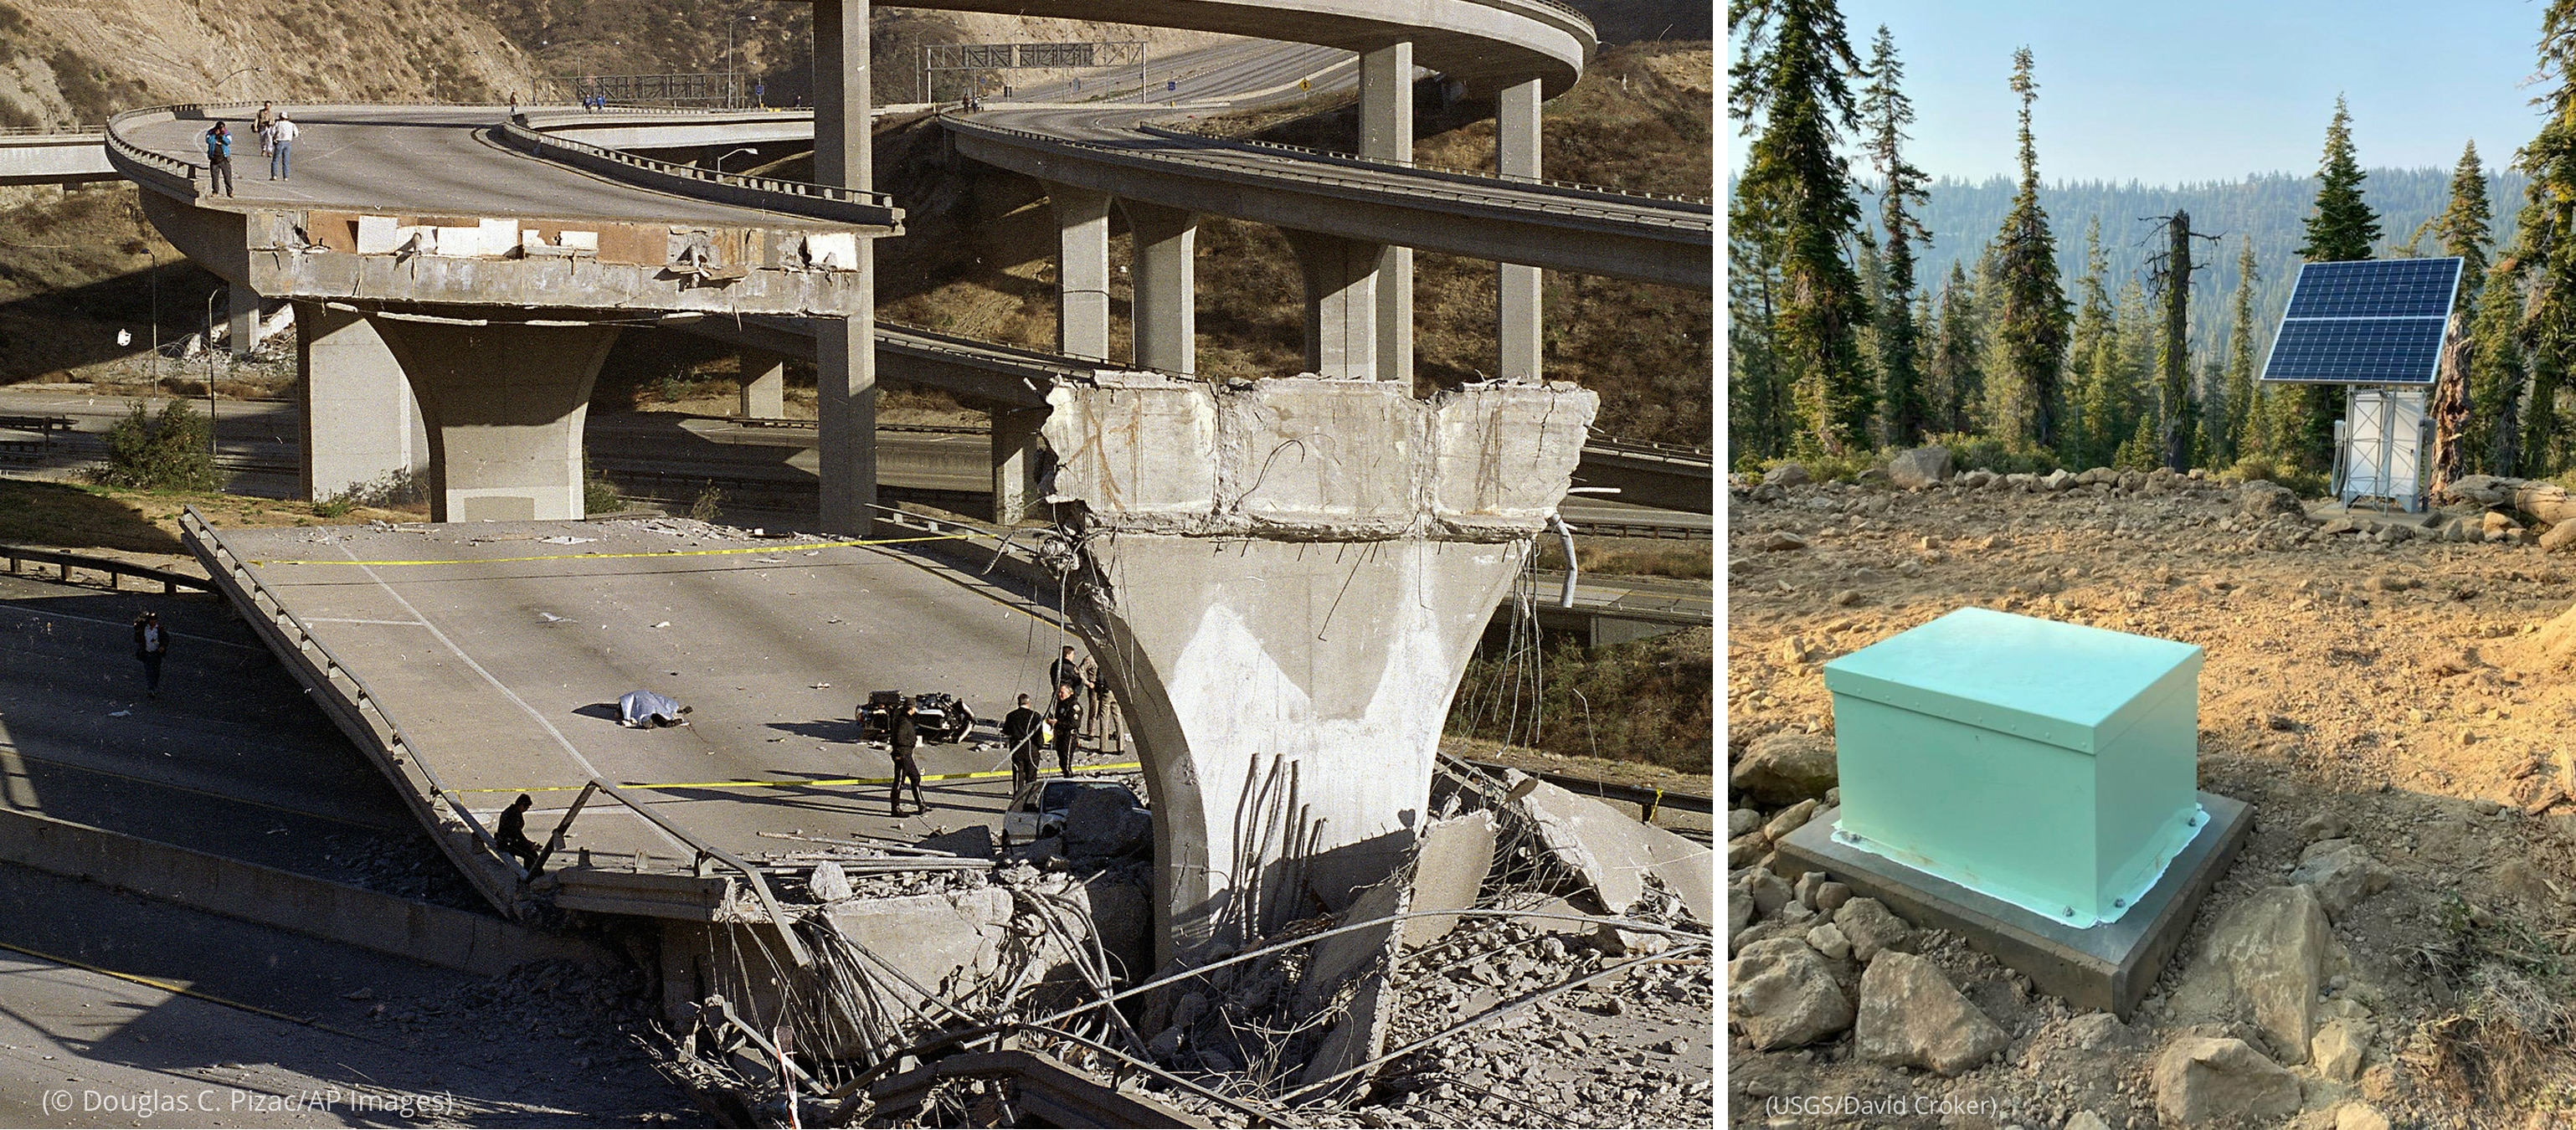 Left photo: Emergency personnel walking around scene of collapsed freeway overpass (© Douglas C. Pizac/AP Images) Right photo: Seismometer and solar panel sitting in clearing in forest (USGS/David Croker)